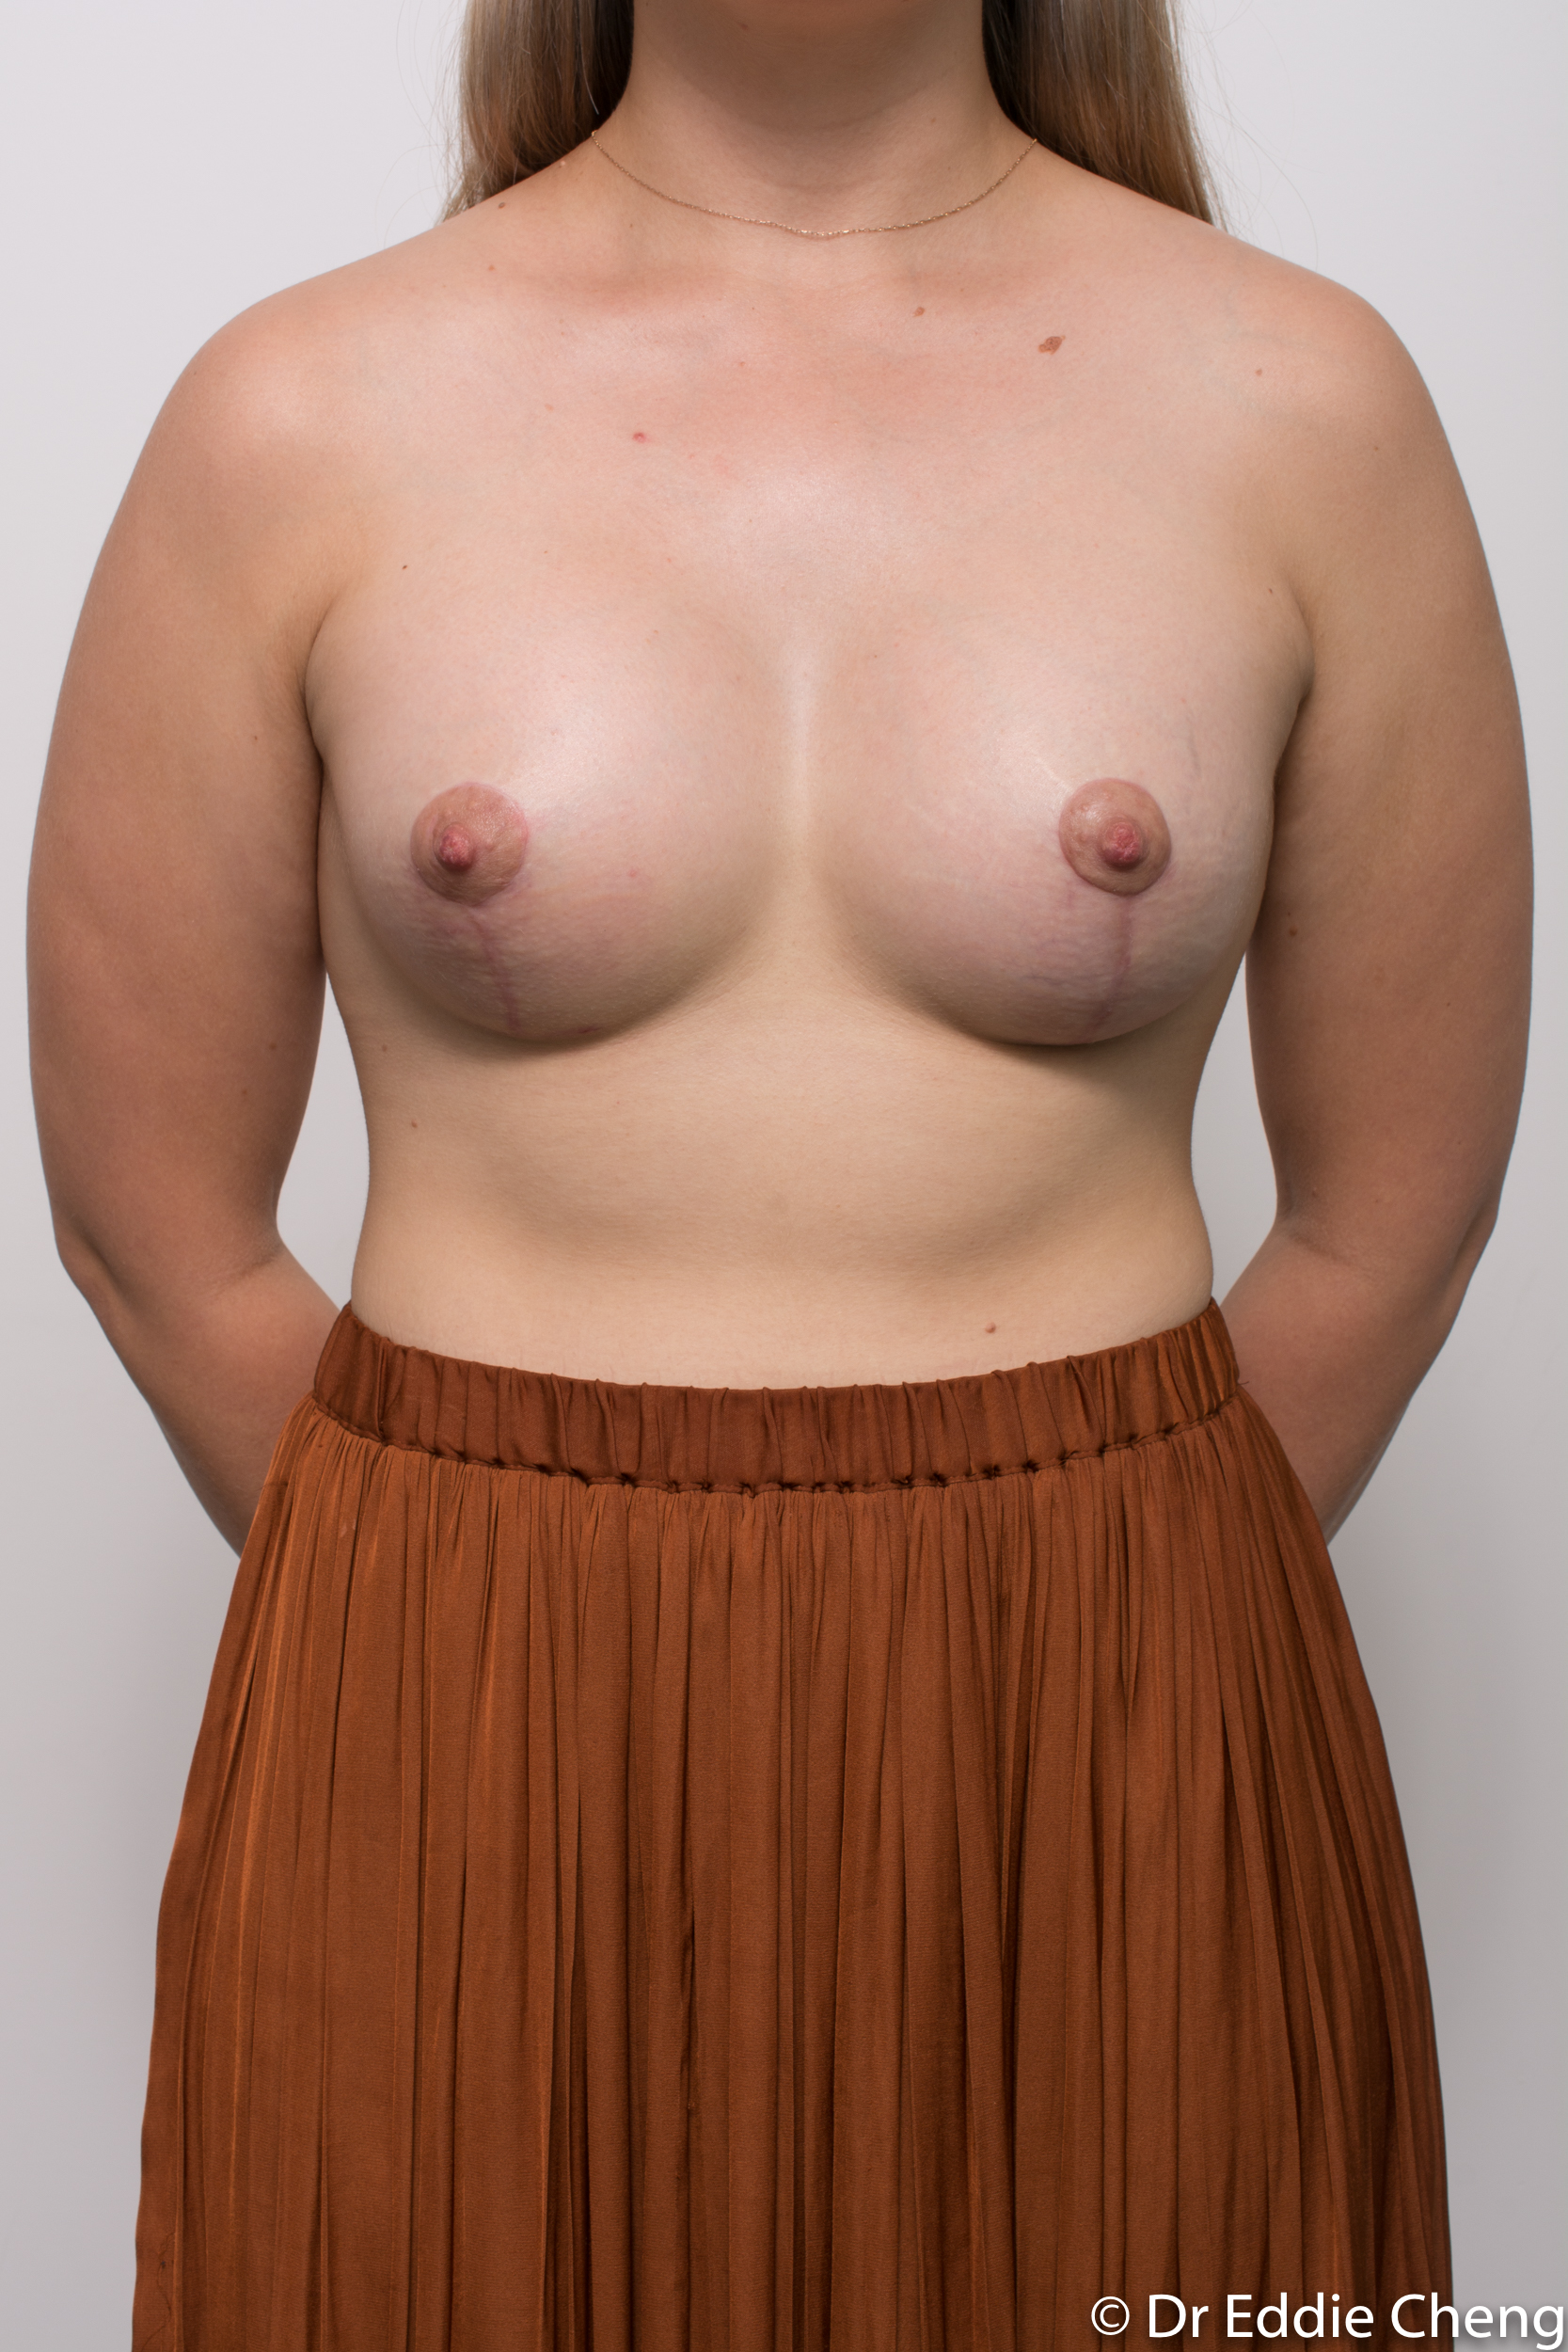 2 stage procedure tuberous breasts dr eddie cheng brisbane surgeon pre and post operative images -3-3